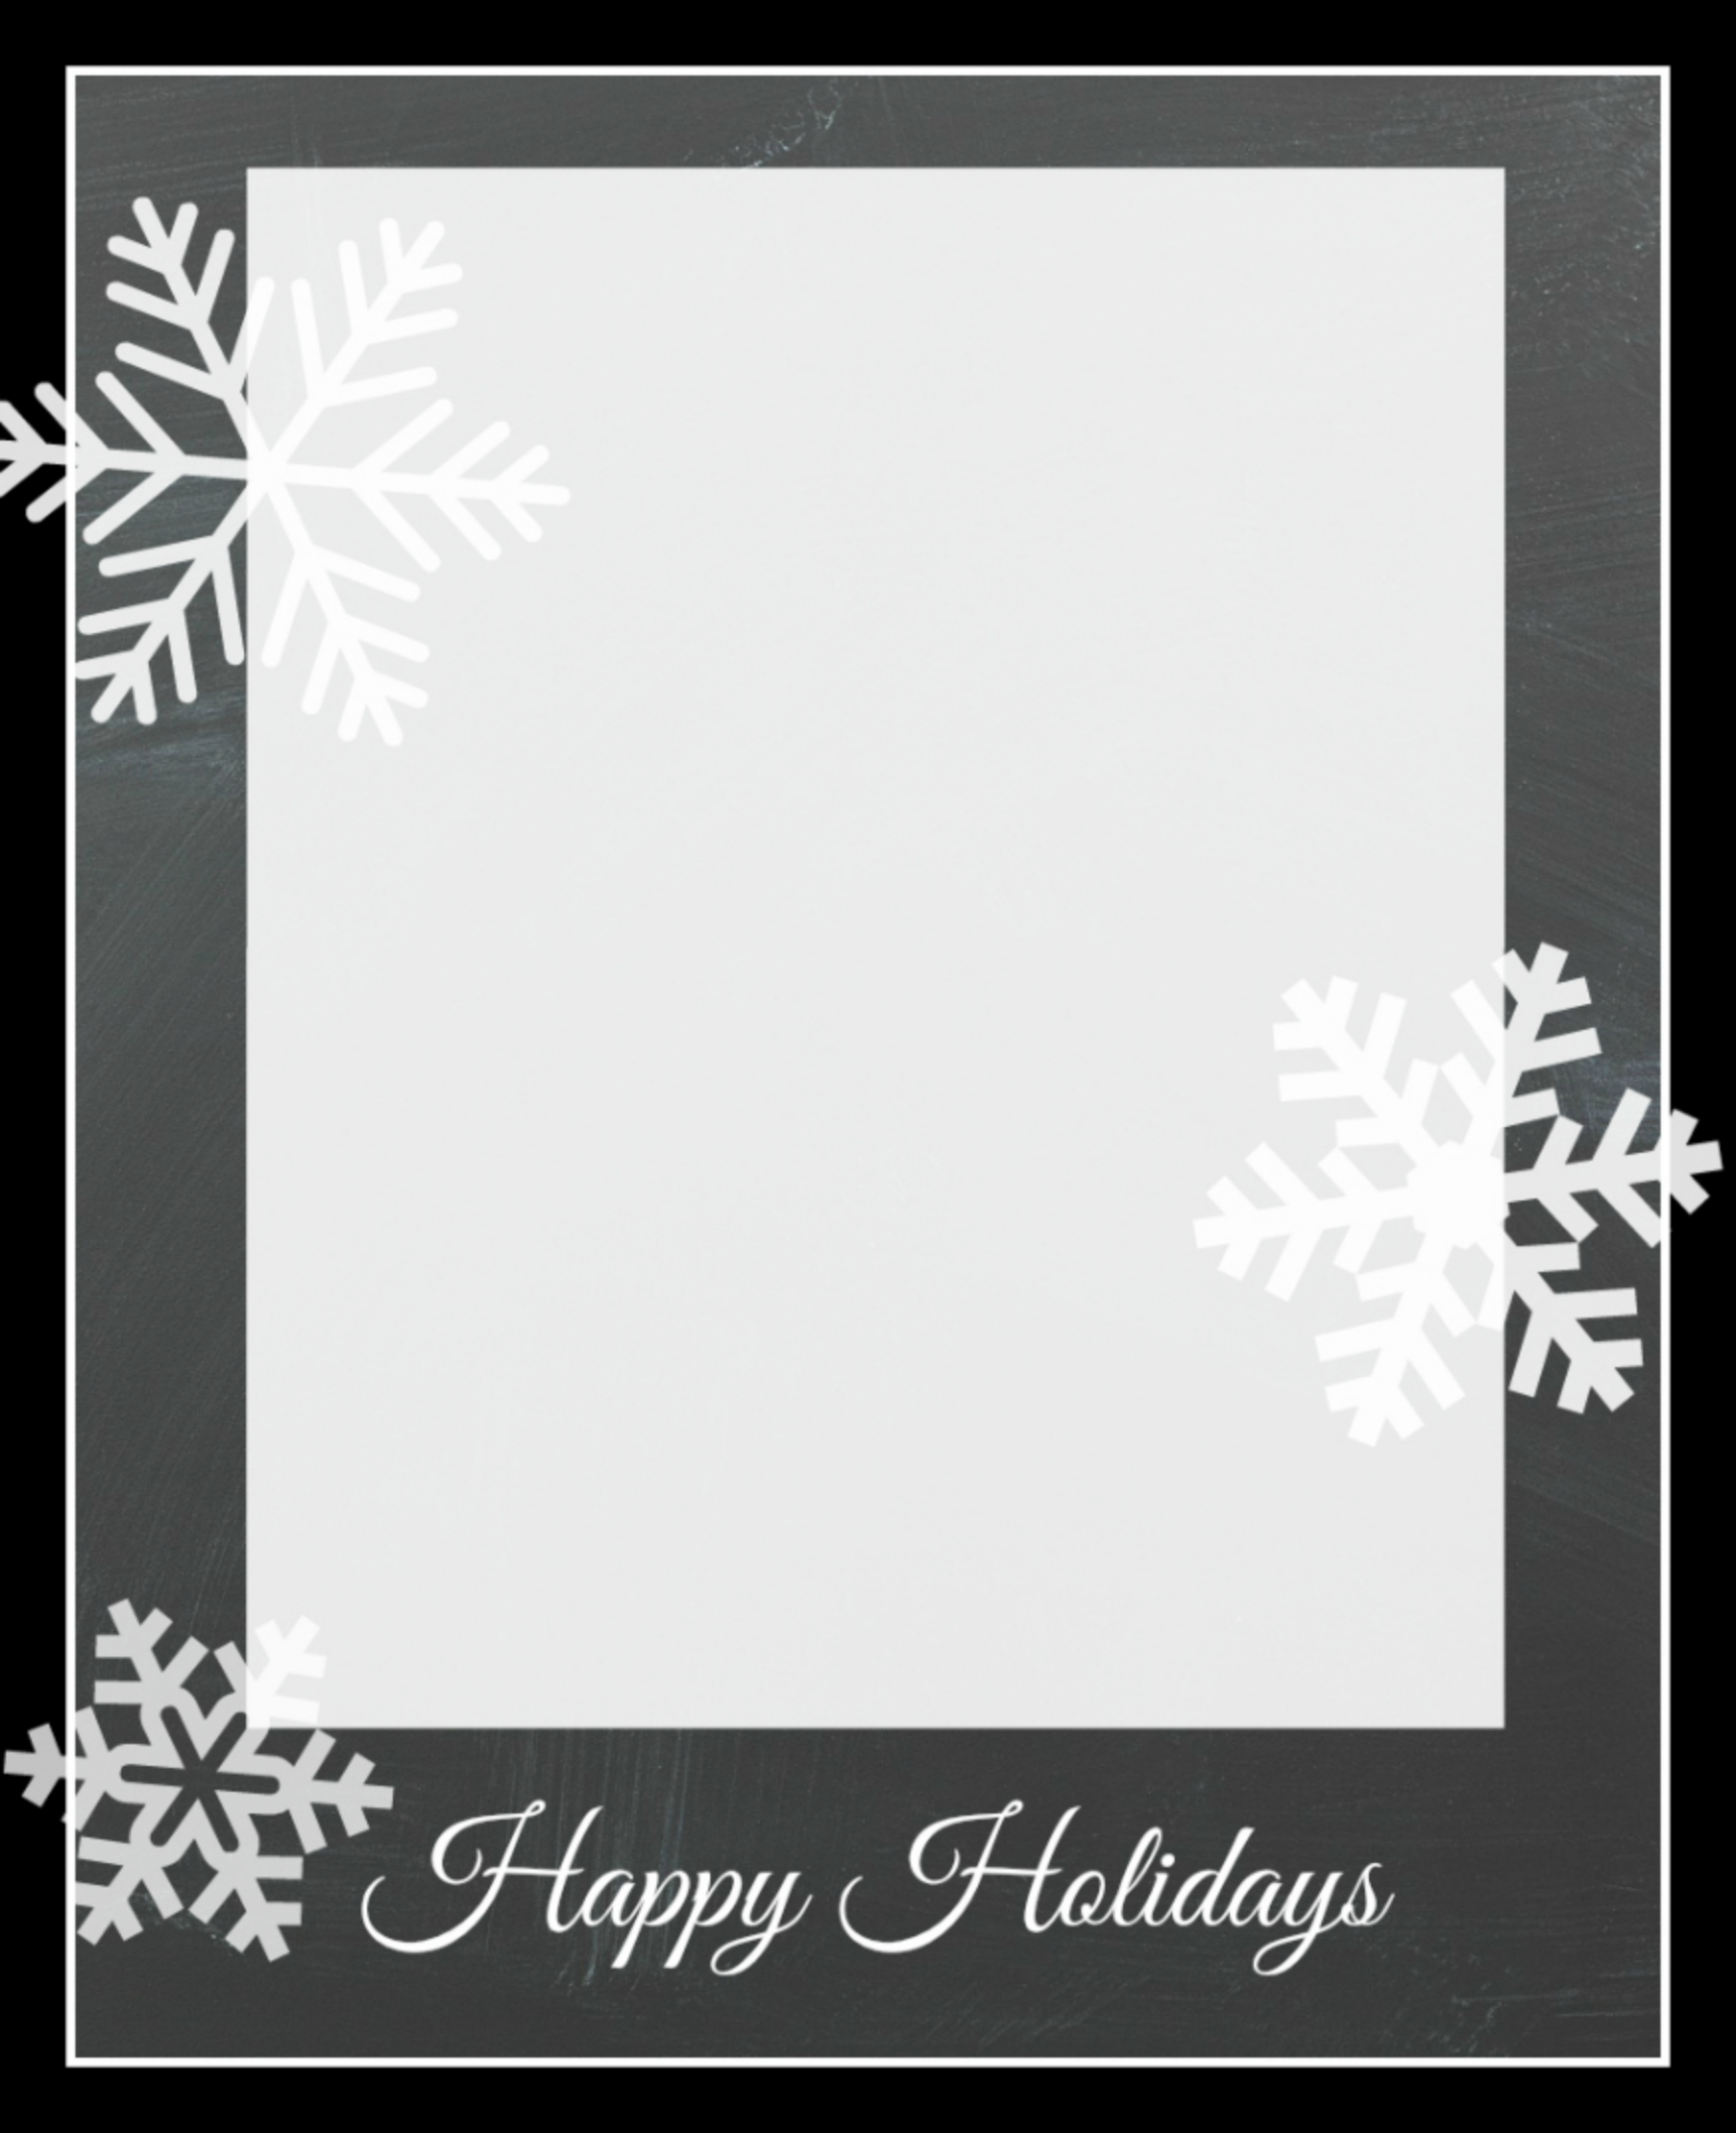 SnowflakeCard3  Christmas Card Templates For Word